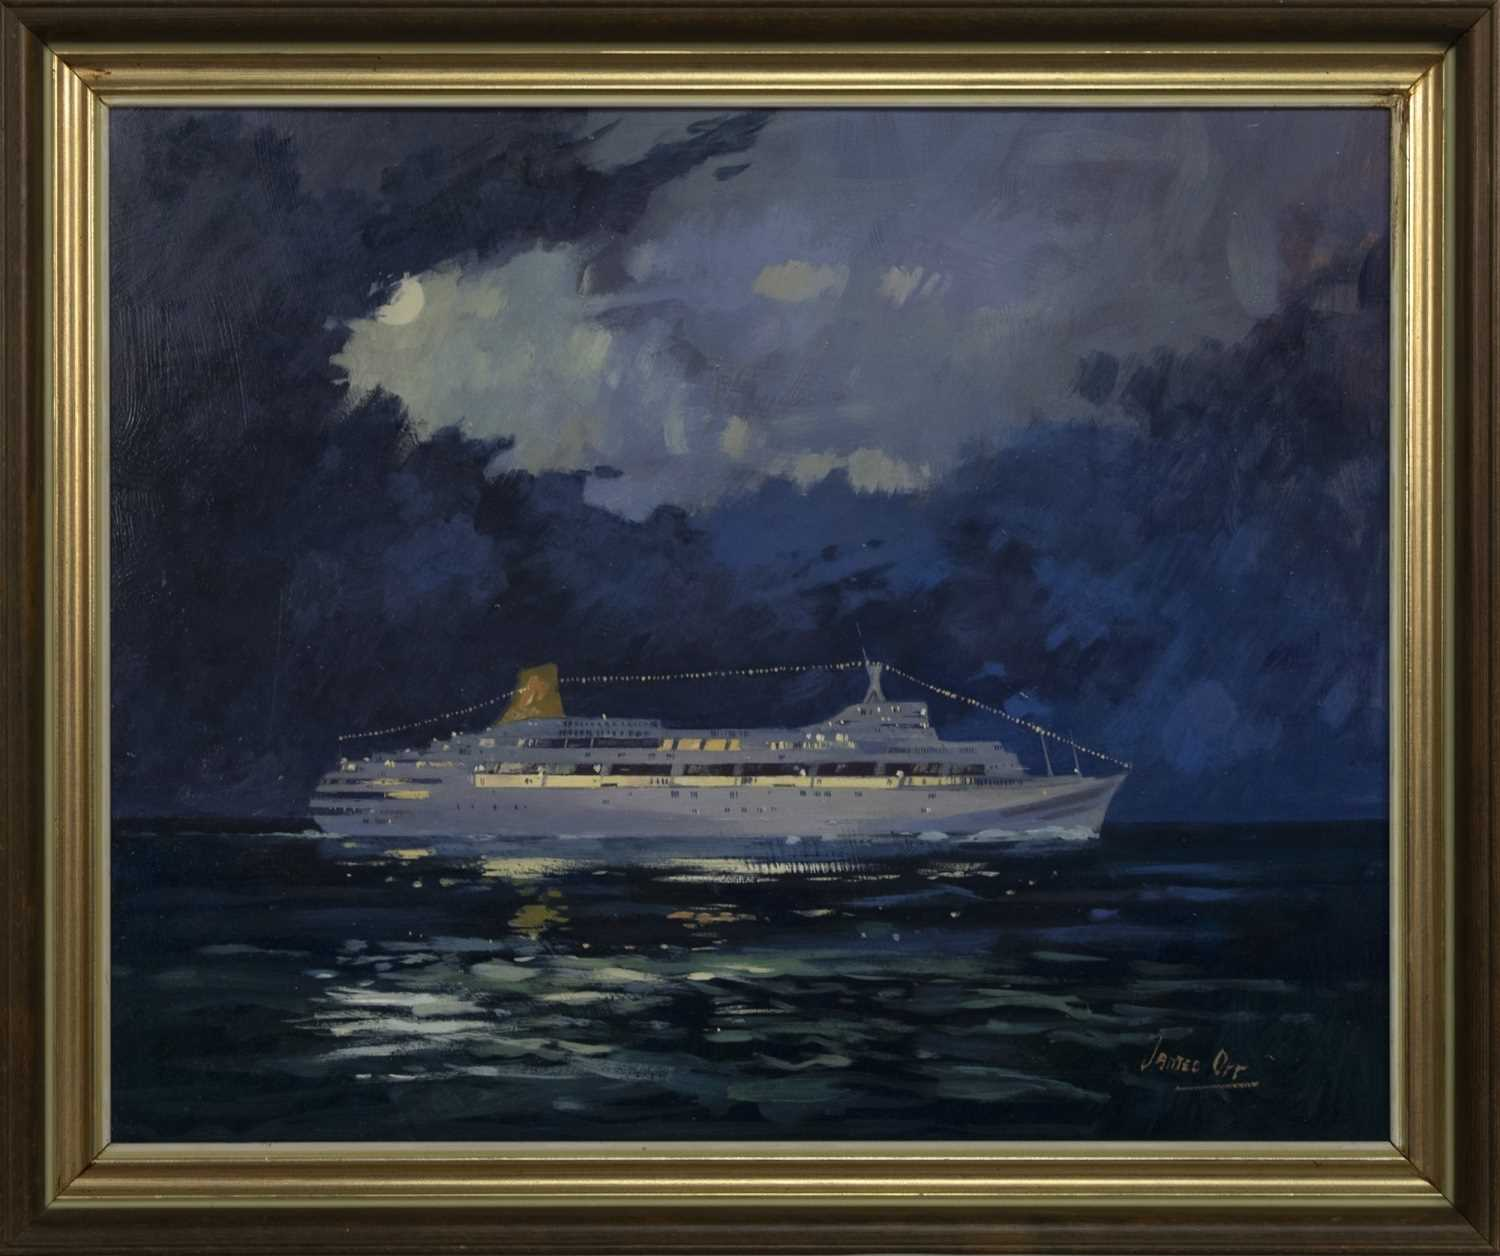 Lot 556 - THE LOVE BOAT, AN OIL BY JAMES ORR